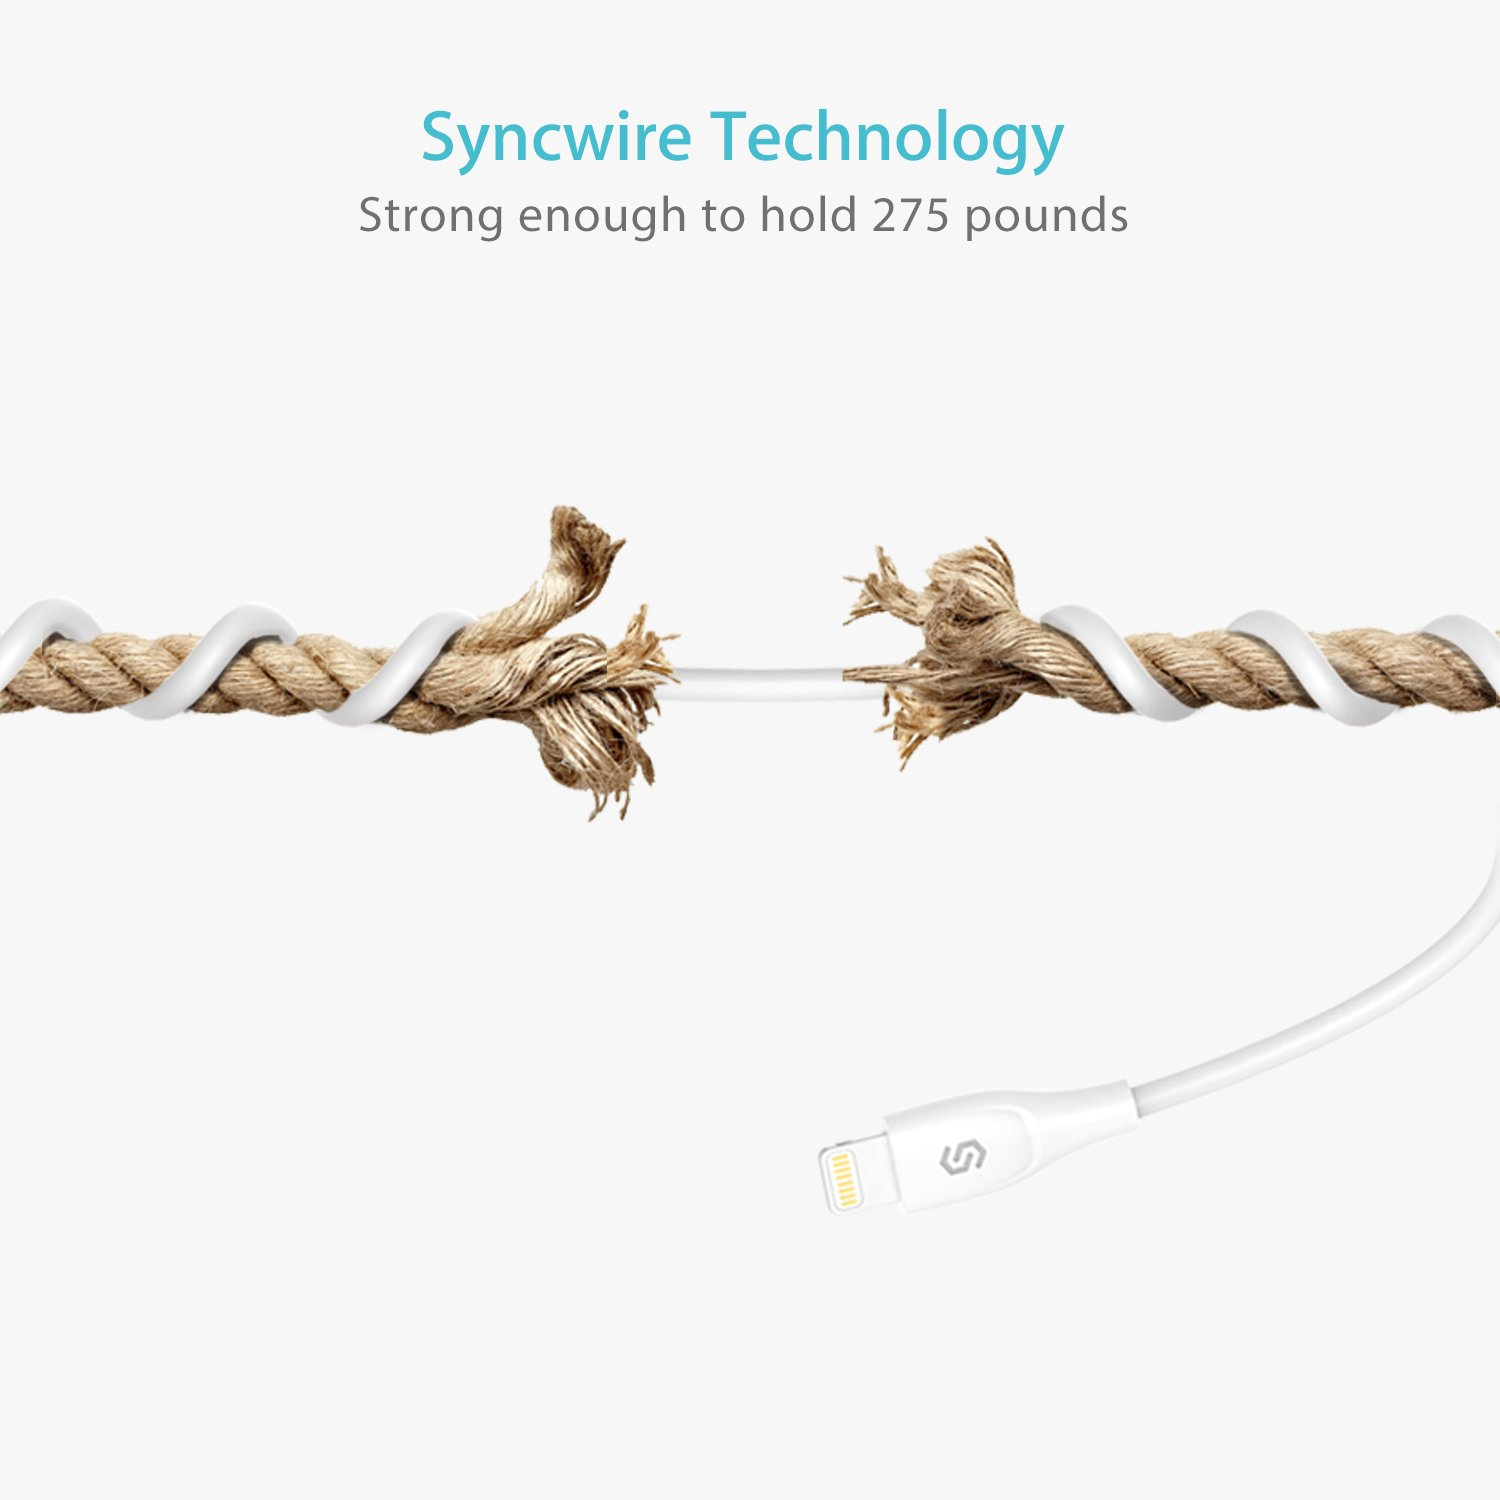 iPhone Charger Syncwire Lightning Cable - [Apple MFi Certified] UNBREAKcable Series for iPhone X, 8, 8 Plus, 7, 7 Plus, 6S, 6S Plus, 6, 6 Plus, SE, 5S, 5C, 5, iPad Mini, iPad Air, Pro - 3.3ft White by Syncwire (Image #7)